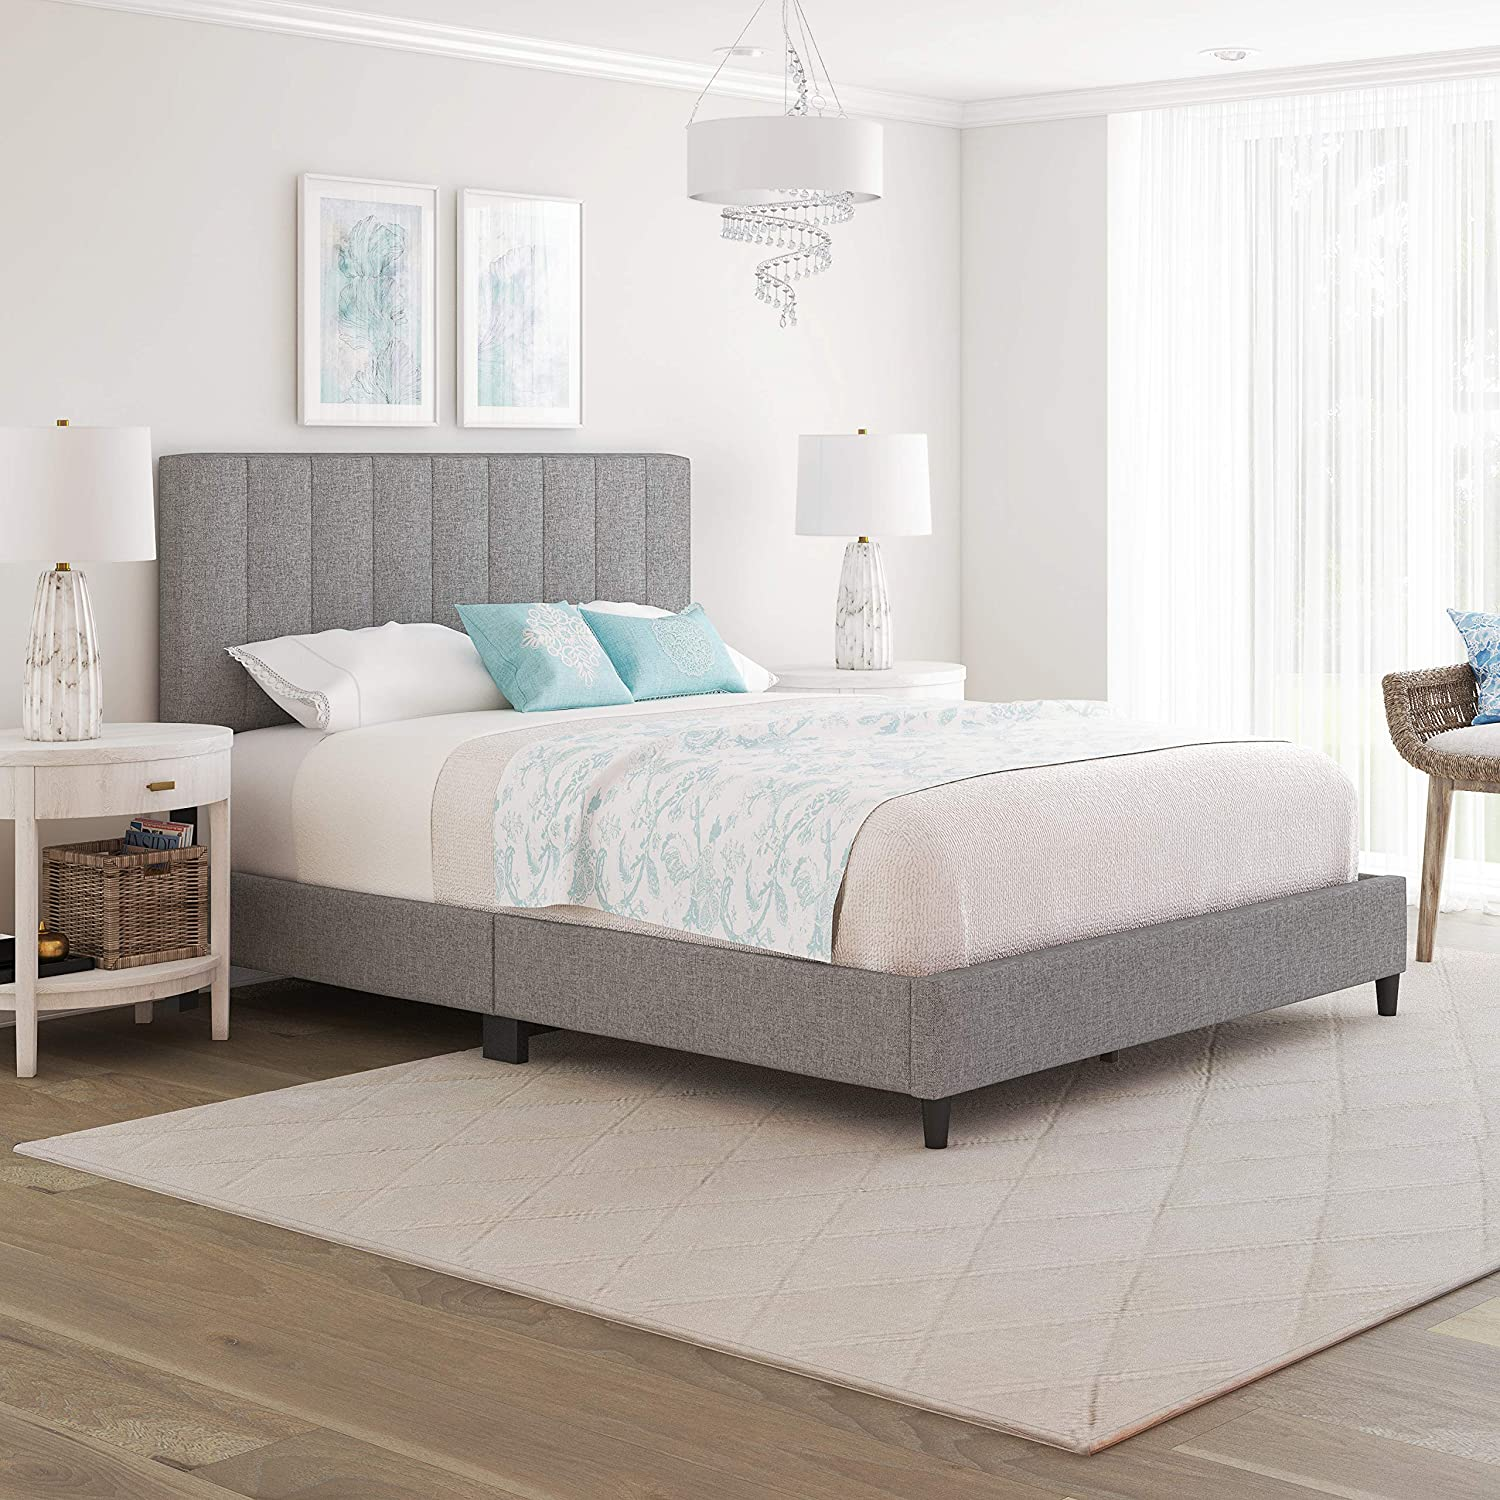 Boyd Sleep Leah Upholstered Vertical Tufted Platform Bed Frame Mattress Foundation with Headboard and Strong Wood Slat Supports: Linen, Grey, Full (LHGR971DB)